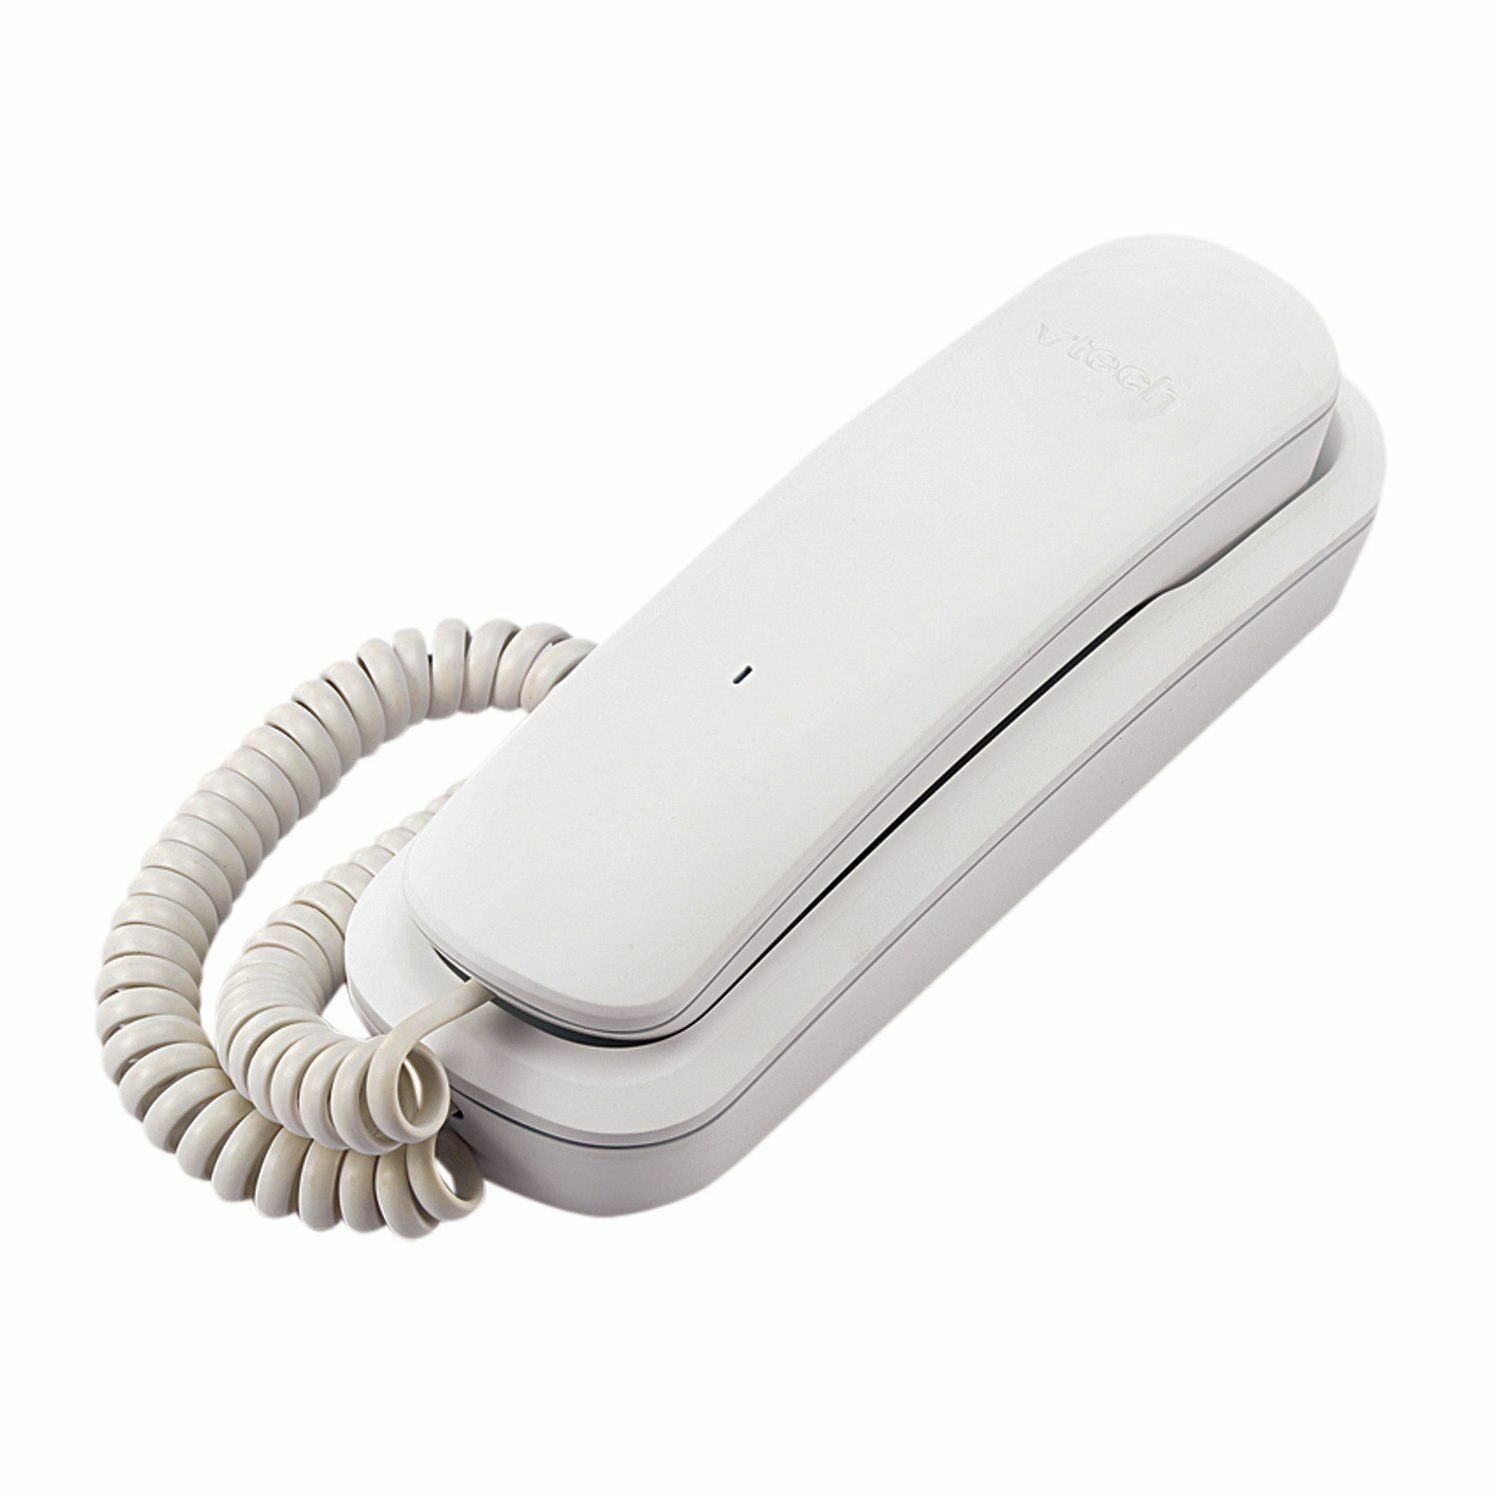 Vtech Trimline  Corded Telephone Home Trimstyle Phone Handset  White